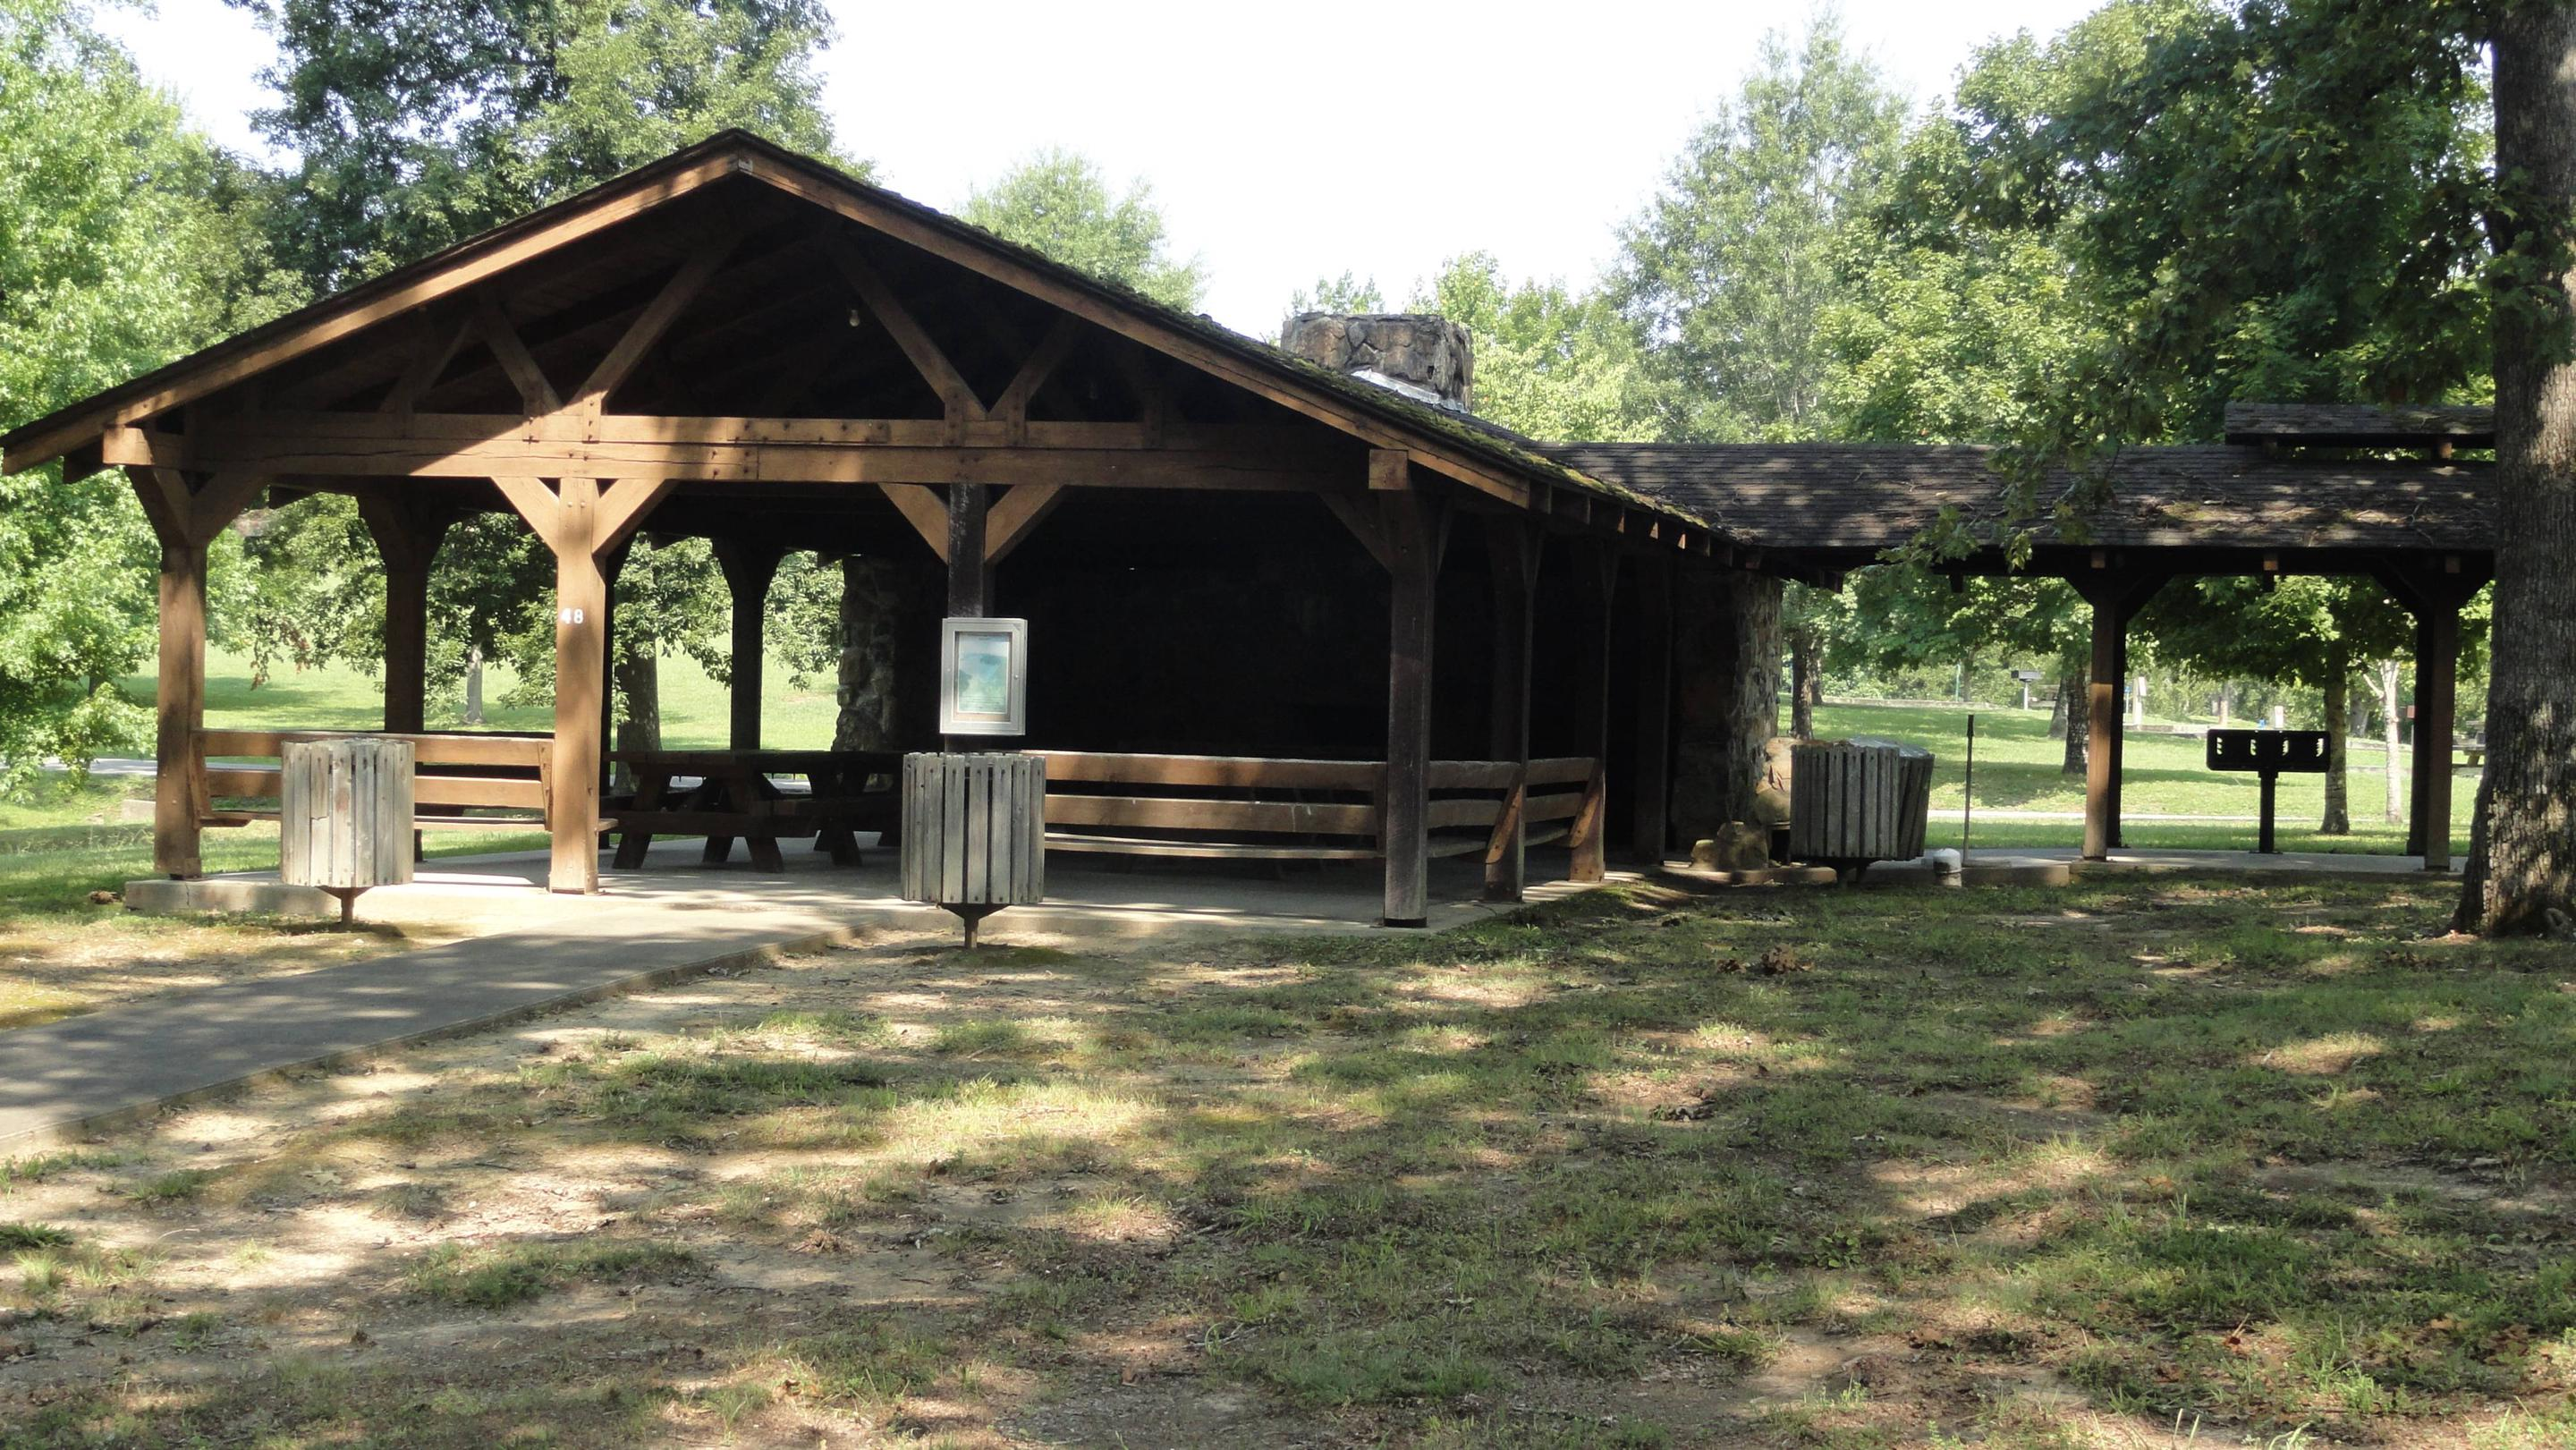 WILLOW GROVE PICNIC SHELTER VIEW OF GRILL TO RIGHTWILLOW GROVE PICNIC SHELTER